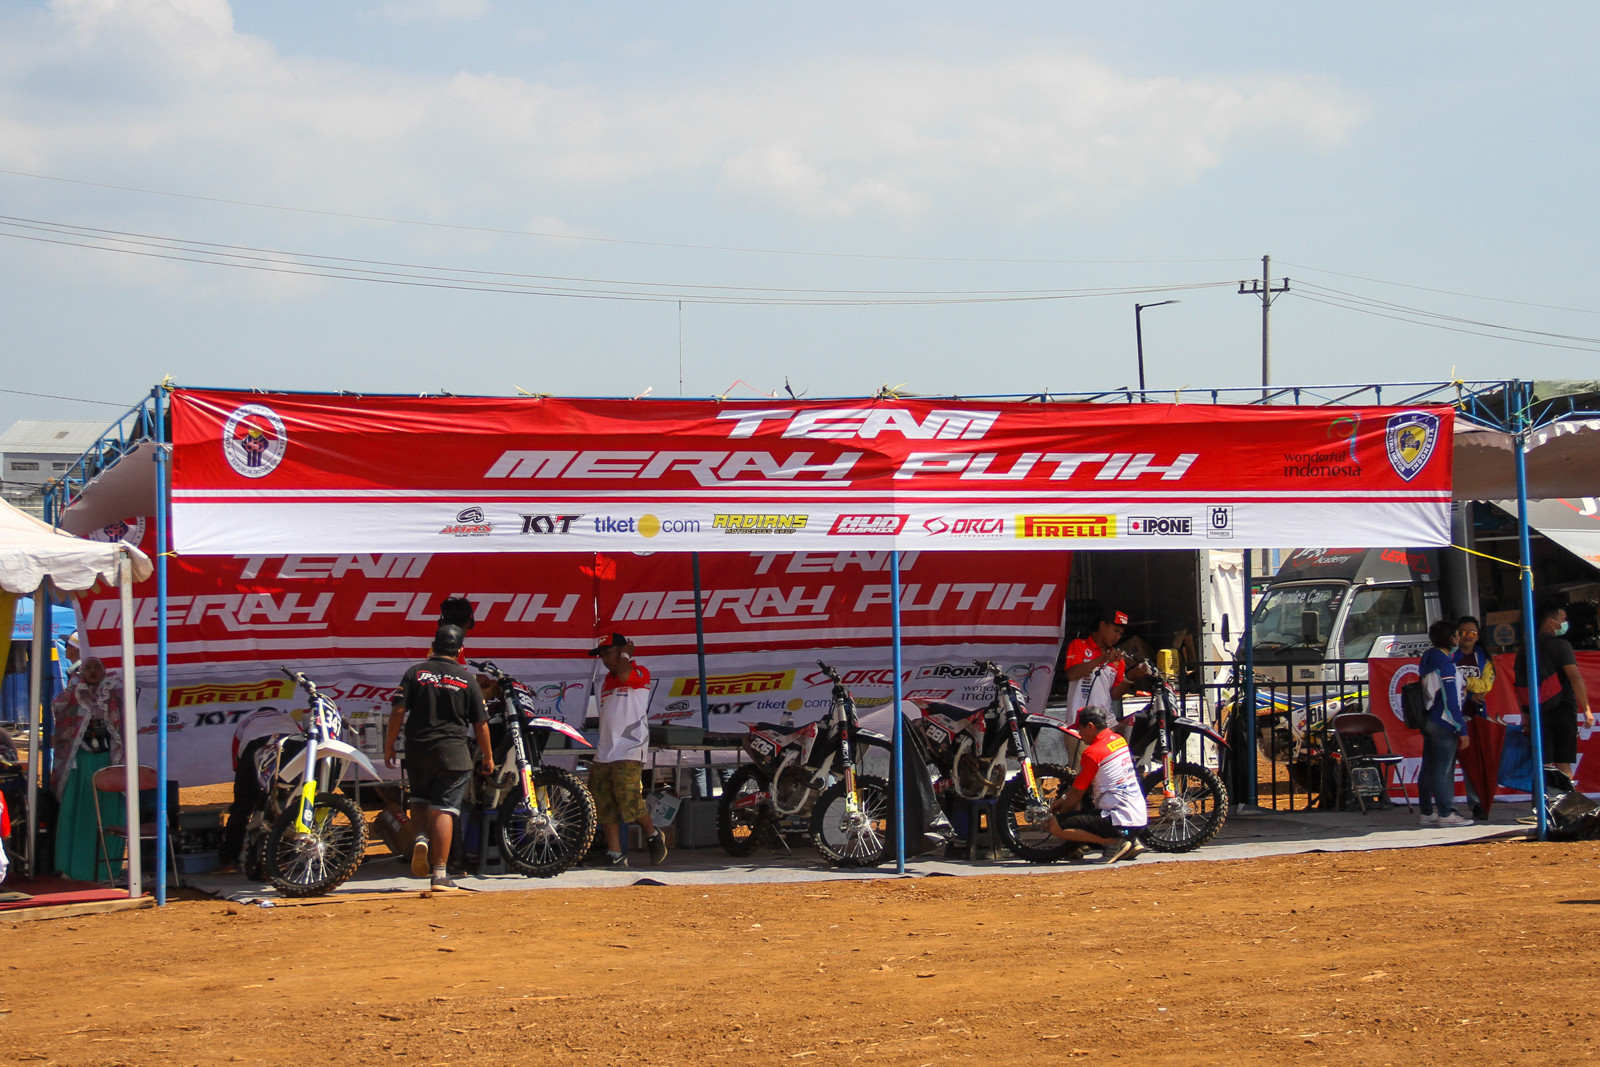 Indonesia does have a growing MX population and one of their local teams had a few riders taking up the wildcard slots.